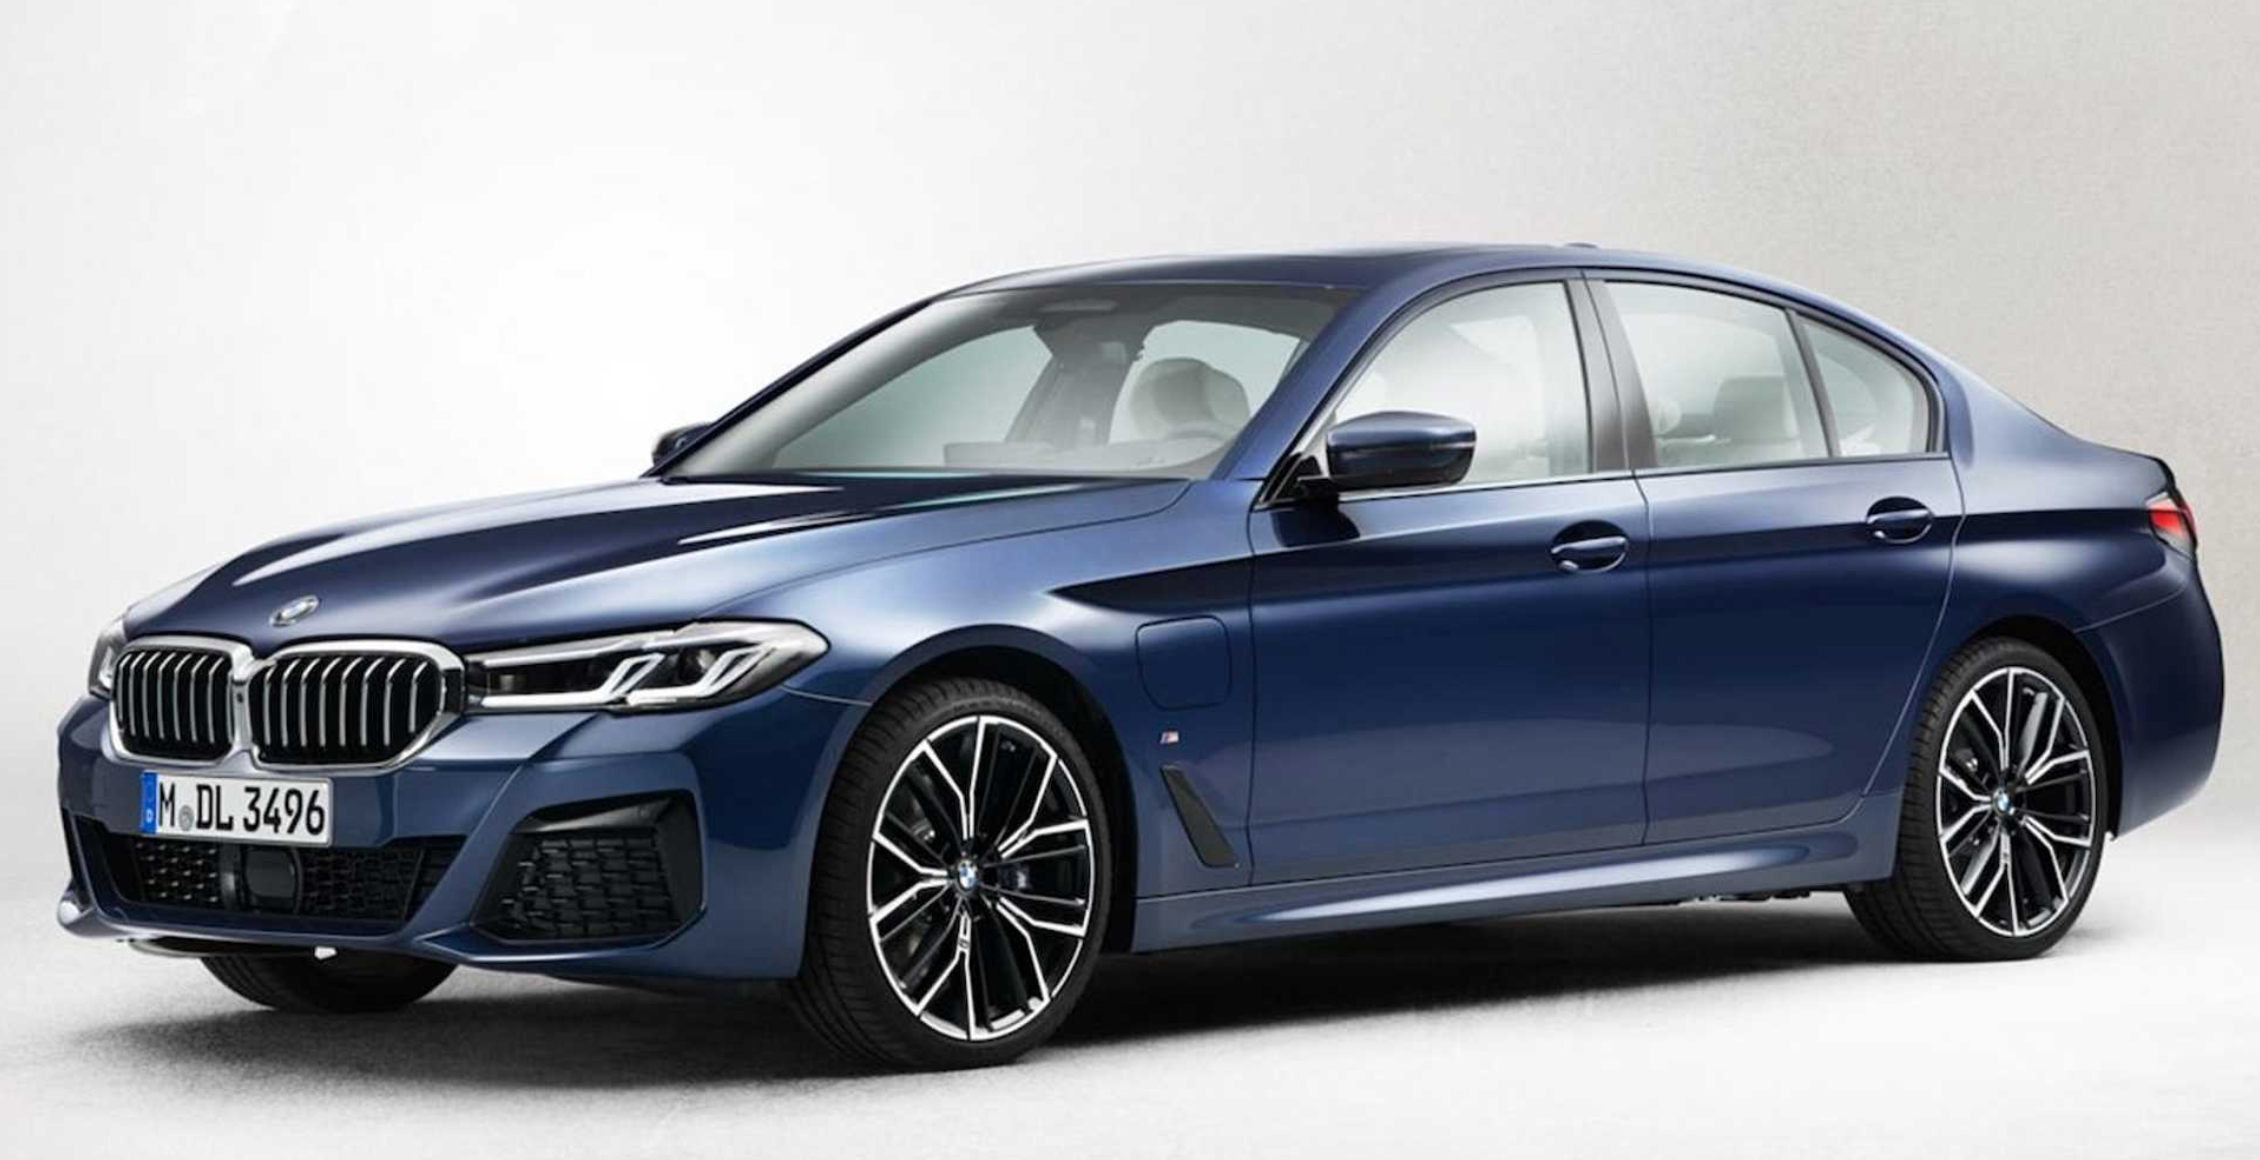 2021-bmw-5-series-sedan-bimmertoday-2.png